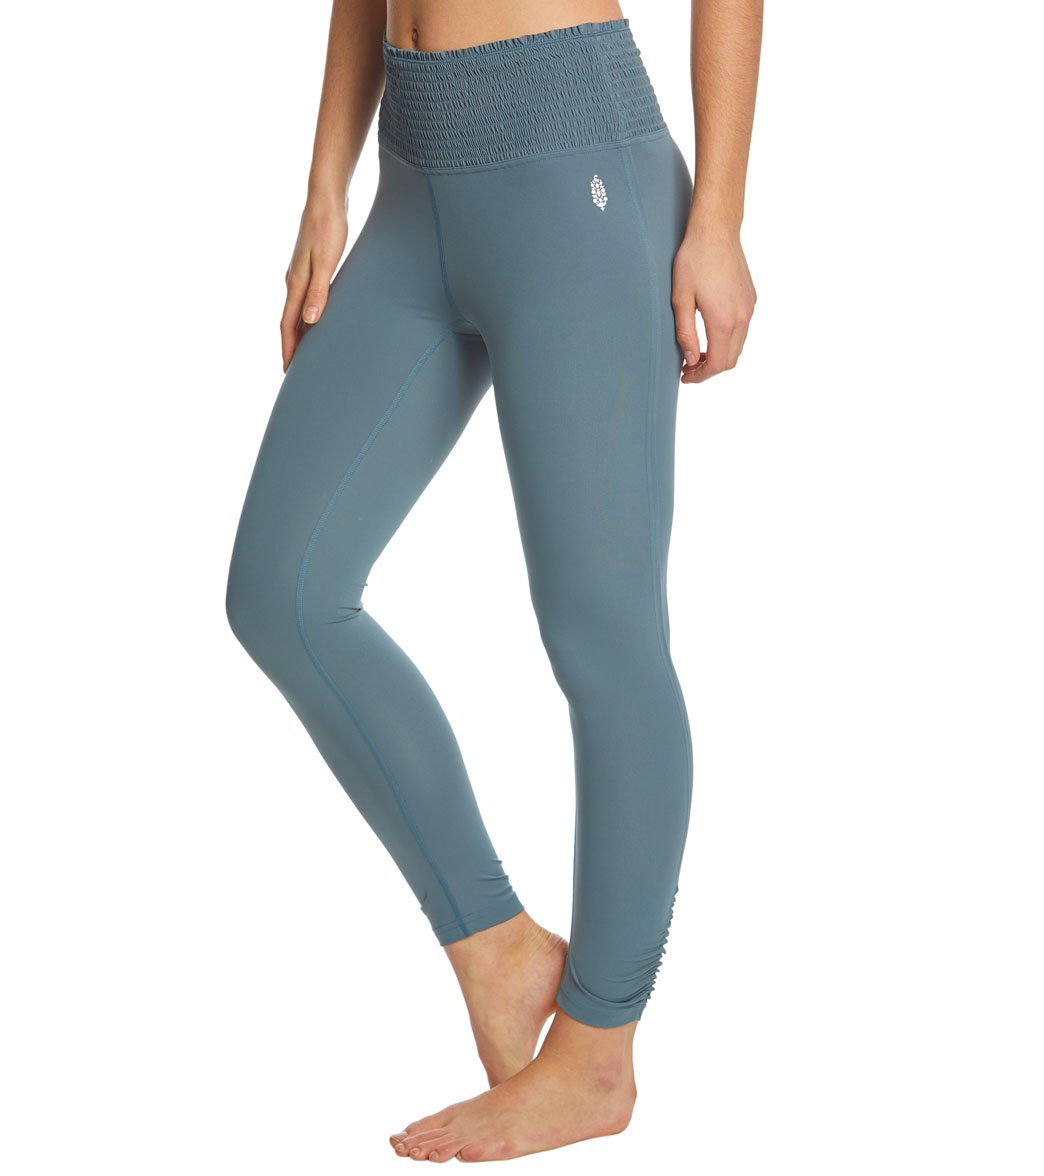 fb7df90495d285 Free People Movement High Waisted Smock It To Me Yoga Leggings at  YogaOutlet.com - Free Shipping